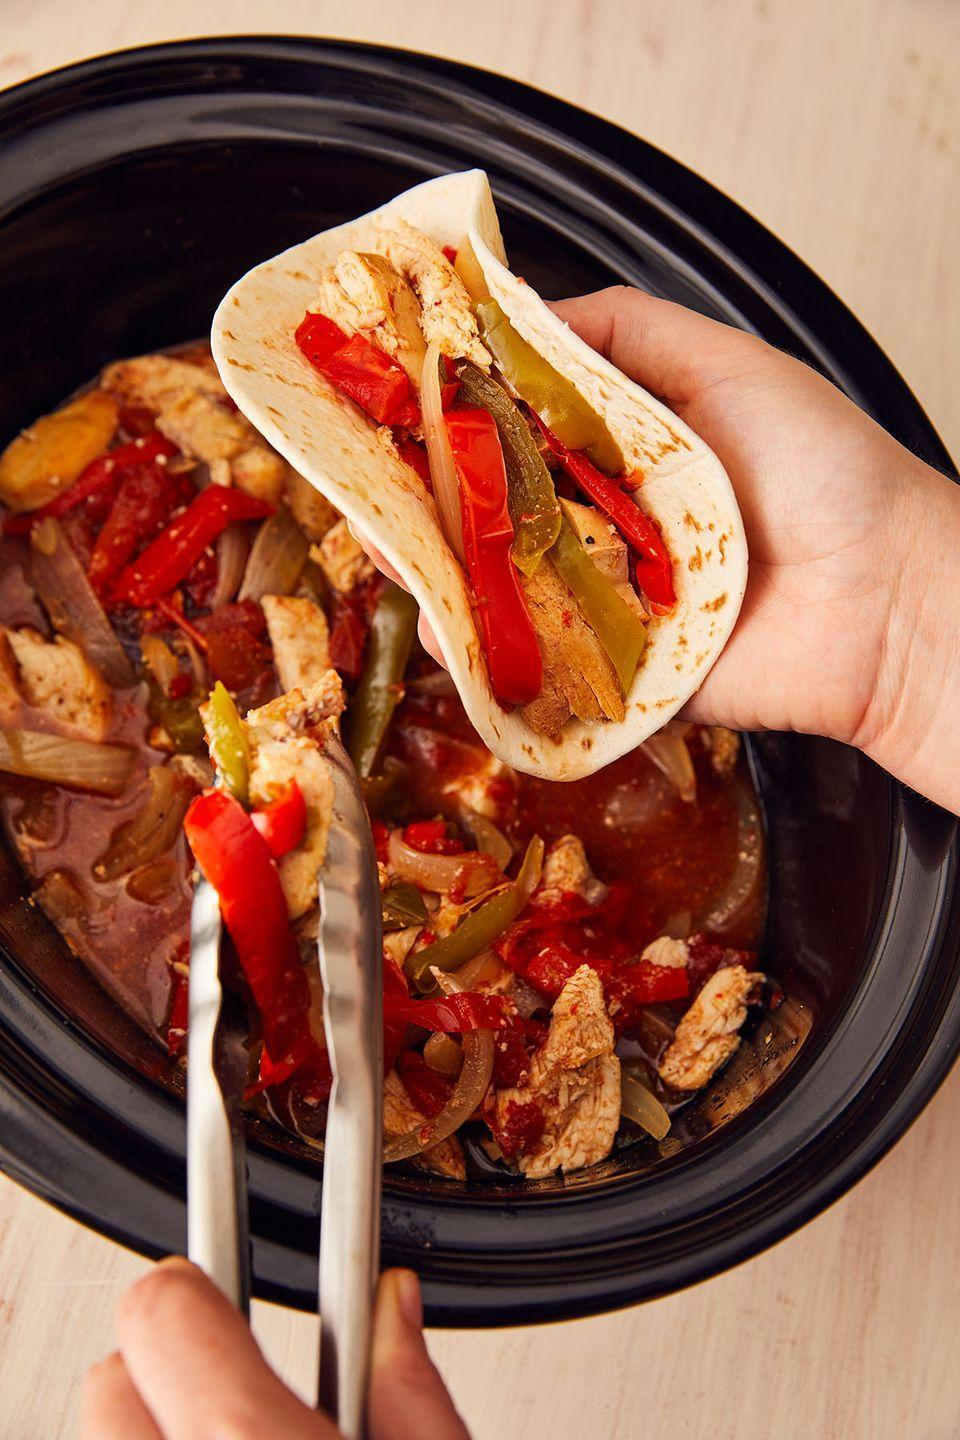 """<p>Prep it before work and come home to the best-smelling kitchen. </p><p>Get the recipe from <a href=""""https://www.delish.com/cooking/recipe-ideas/a22175263/crockpot-chicken-fajitas-recipe/"""" rel=""""nofollow noopener"""" target=""""_blank"""" data-ylk=""""slk:Delish"""" class=""""link rapid-noclick-resp"""">Delish</a>.</p>"""